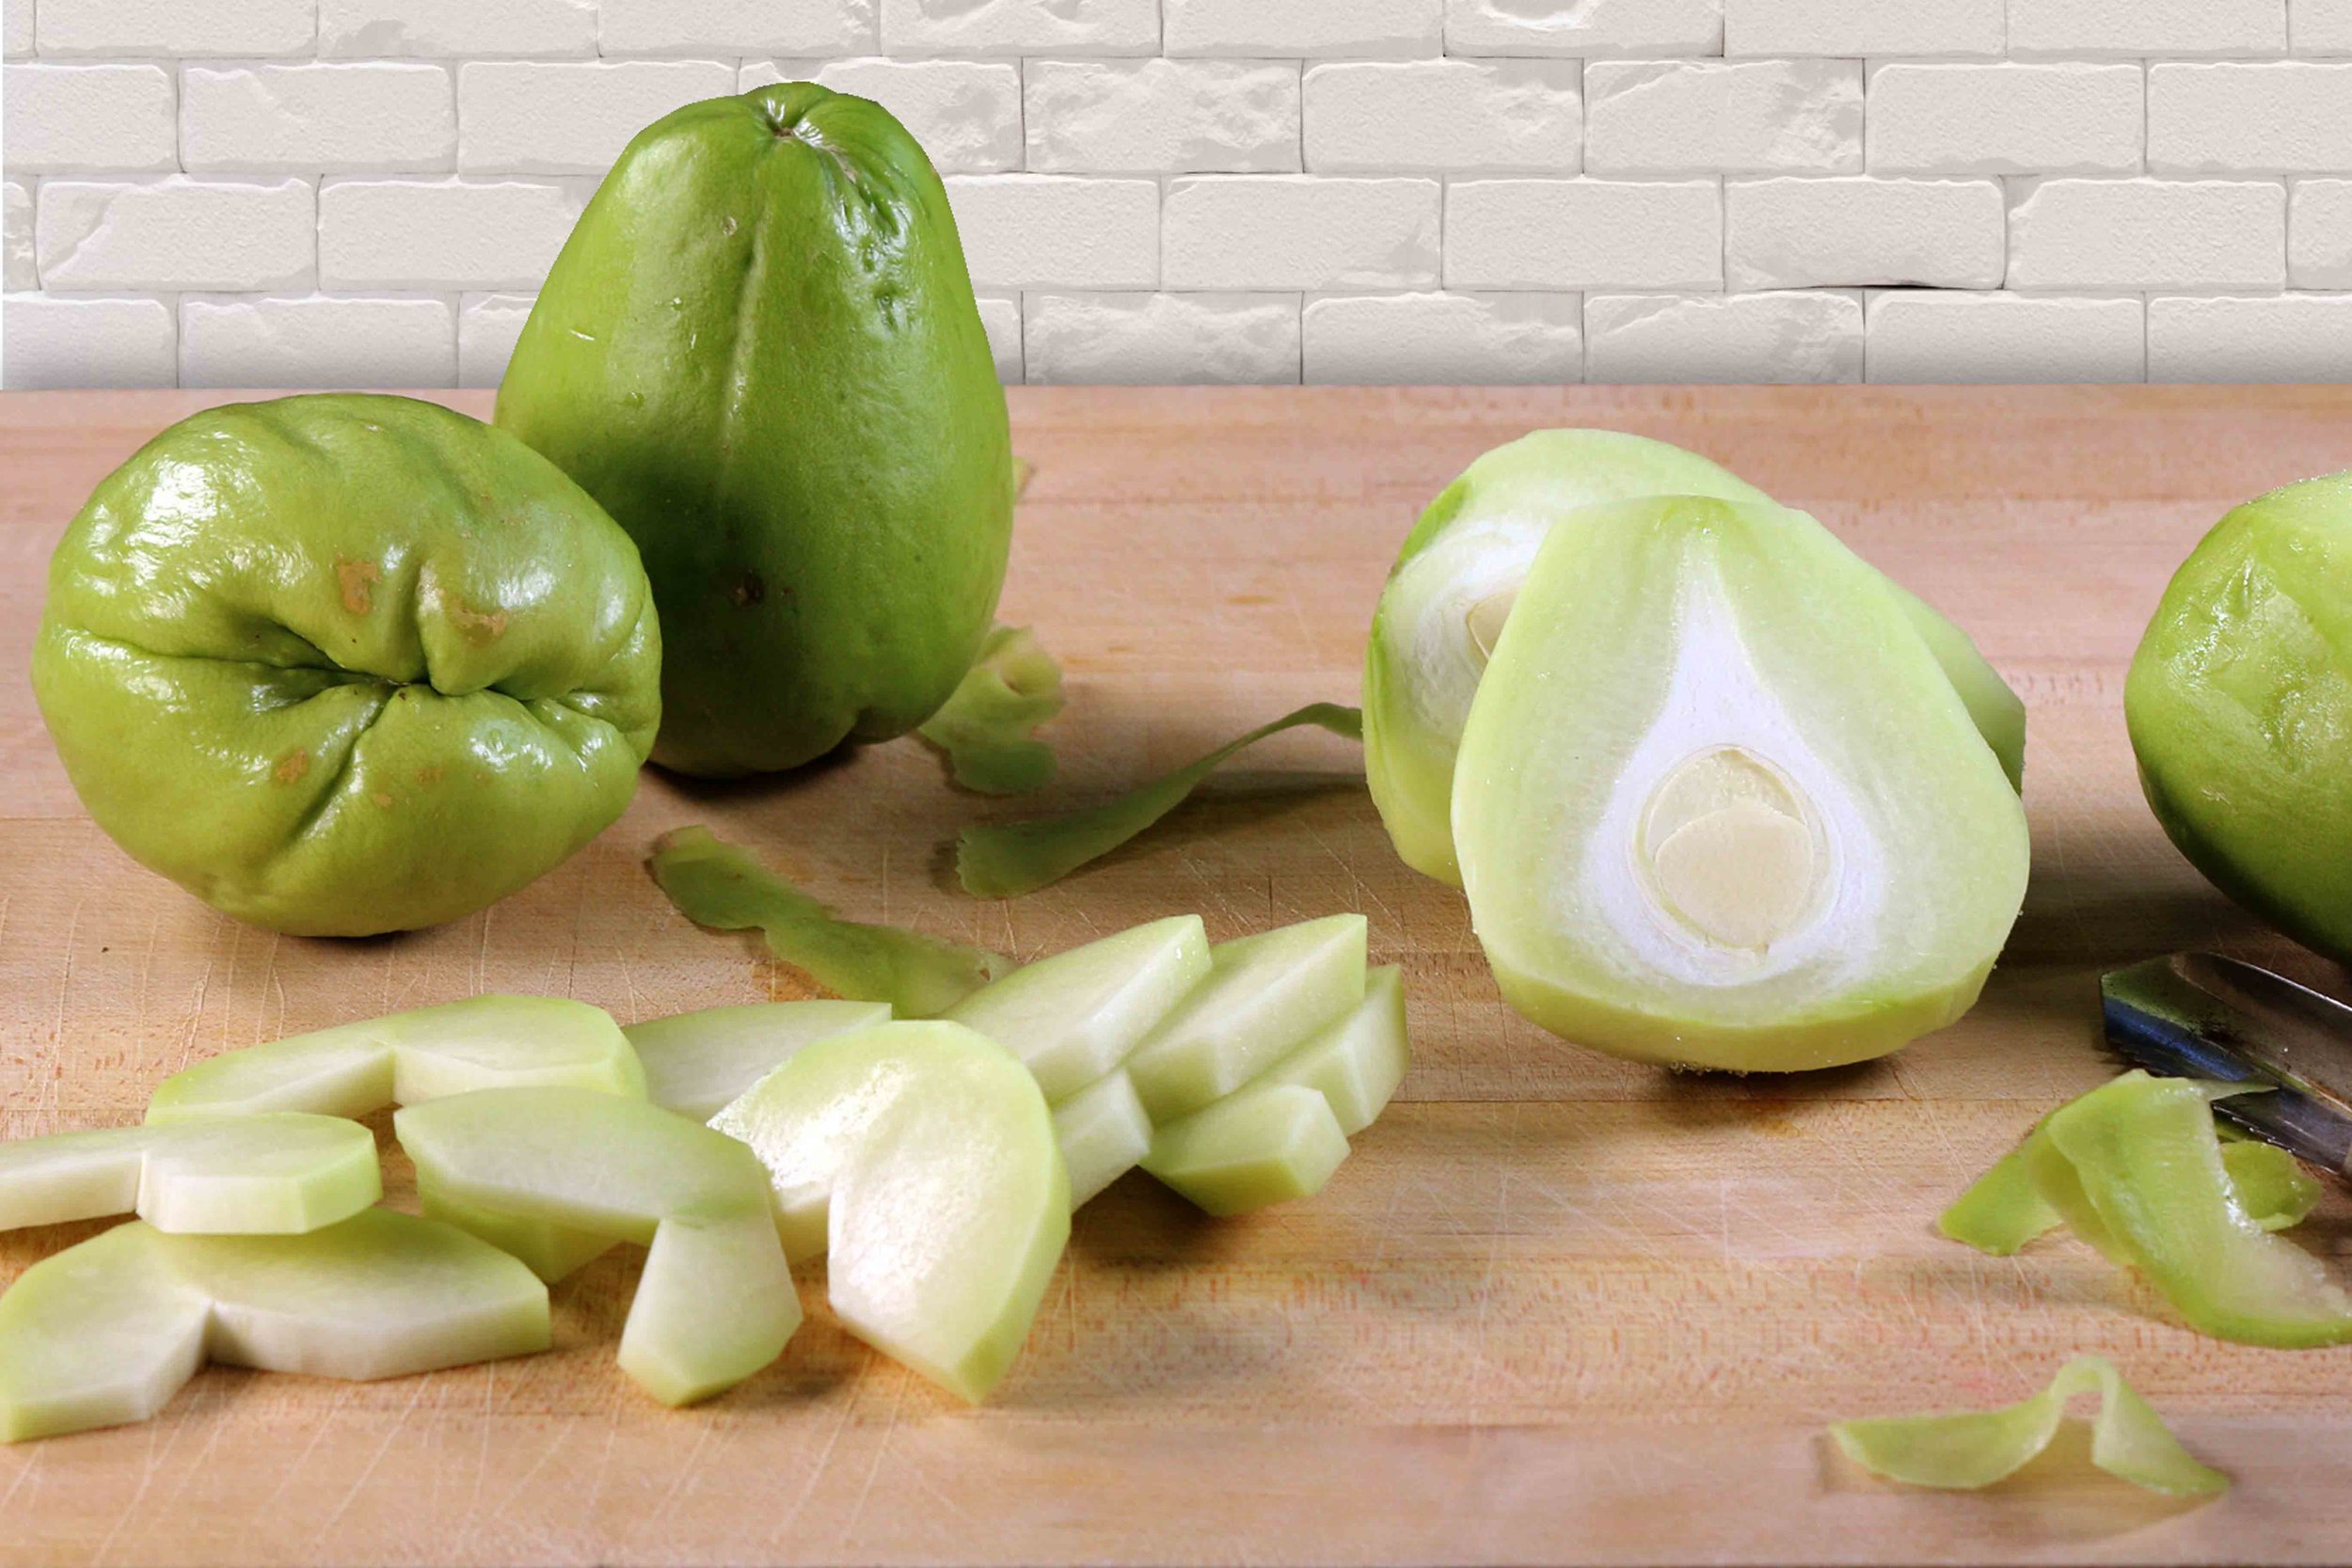 Chayote Squash, which is used in this recipe was actually used in Australia in the depression years after world war 2 as a substitute for apples which were in short supply, click on the image to learn more about chayote squash